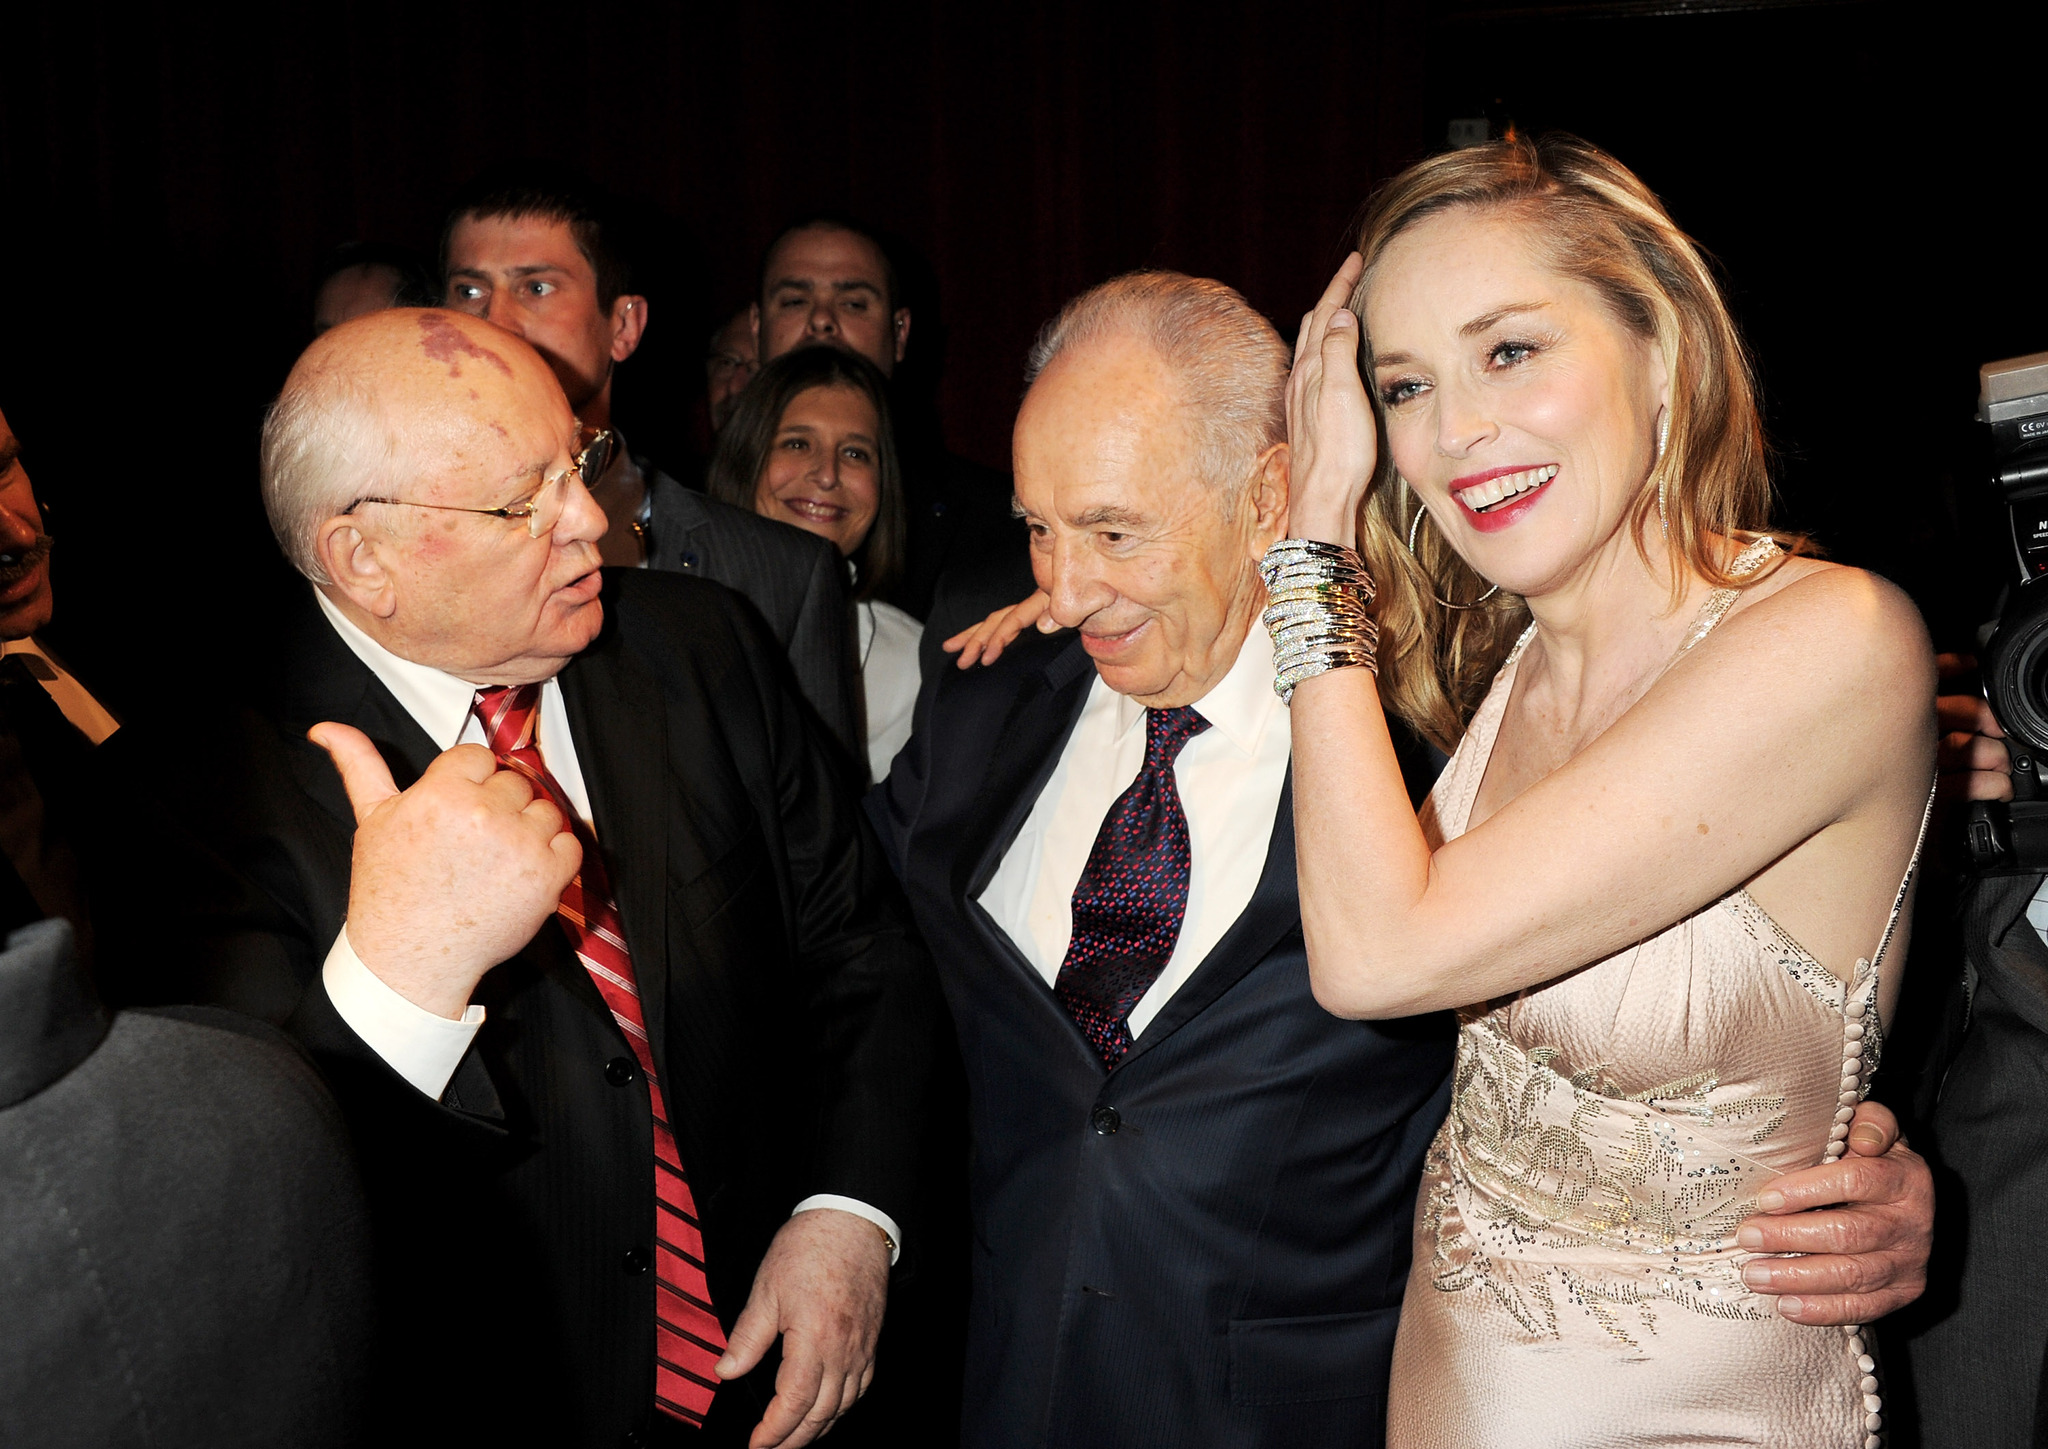 LONDON, ENGLAND - MARCH 30: (L to R) Former Soviet leader Mikhail Gorbachev, Israeli President Shimon Peres and actress Sharon Stone attend the Gorby 80 Gala at the Royal Albert Hall on March 30, 2011 in London, England. The concert is to celebrate the 80th birthday of the former Soviet leader Mikhail Gorbachev. (Photo by Dave Benett/G80/Getty Images)